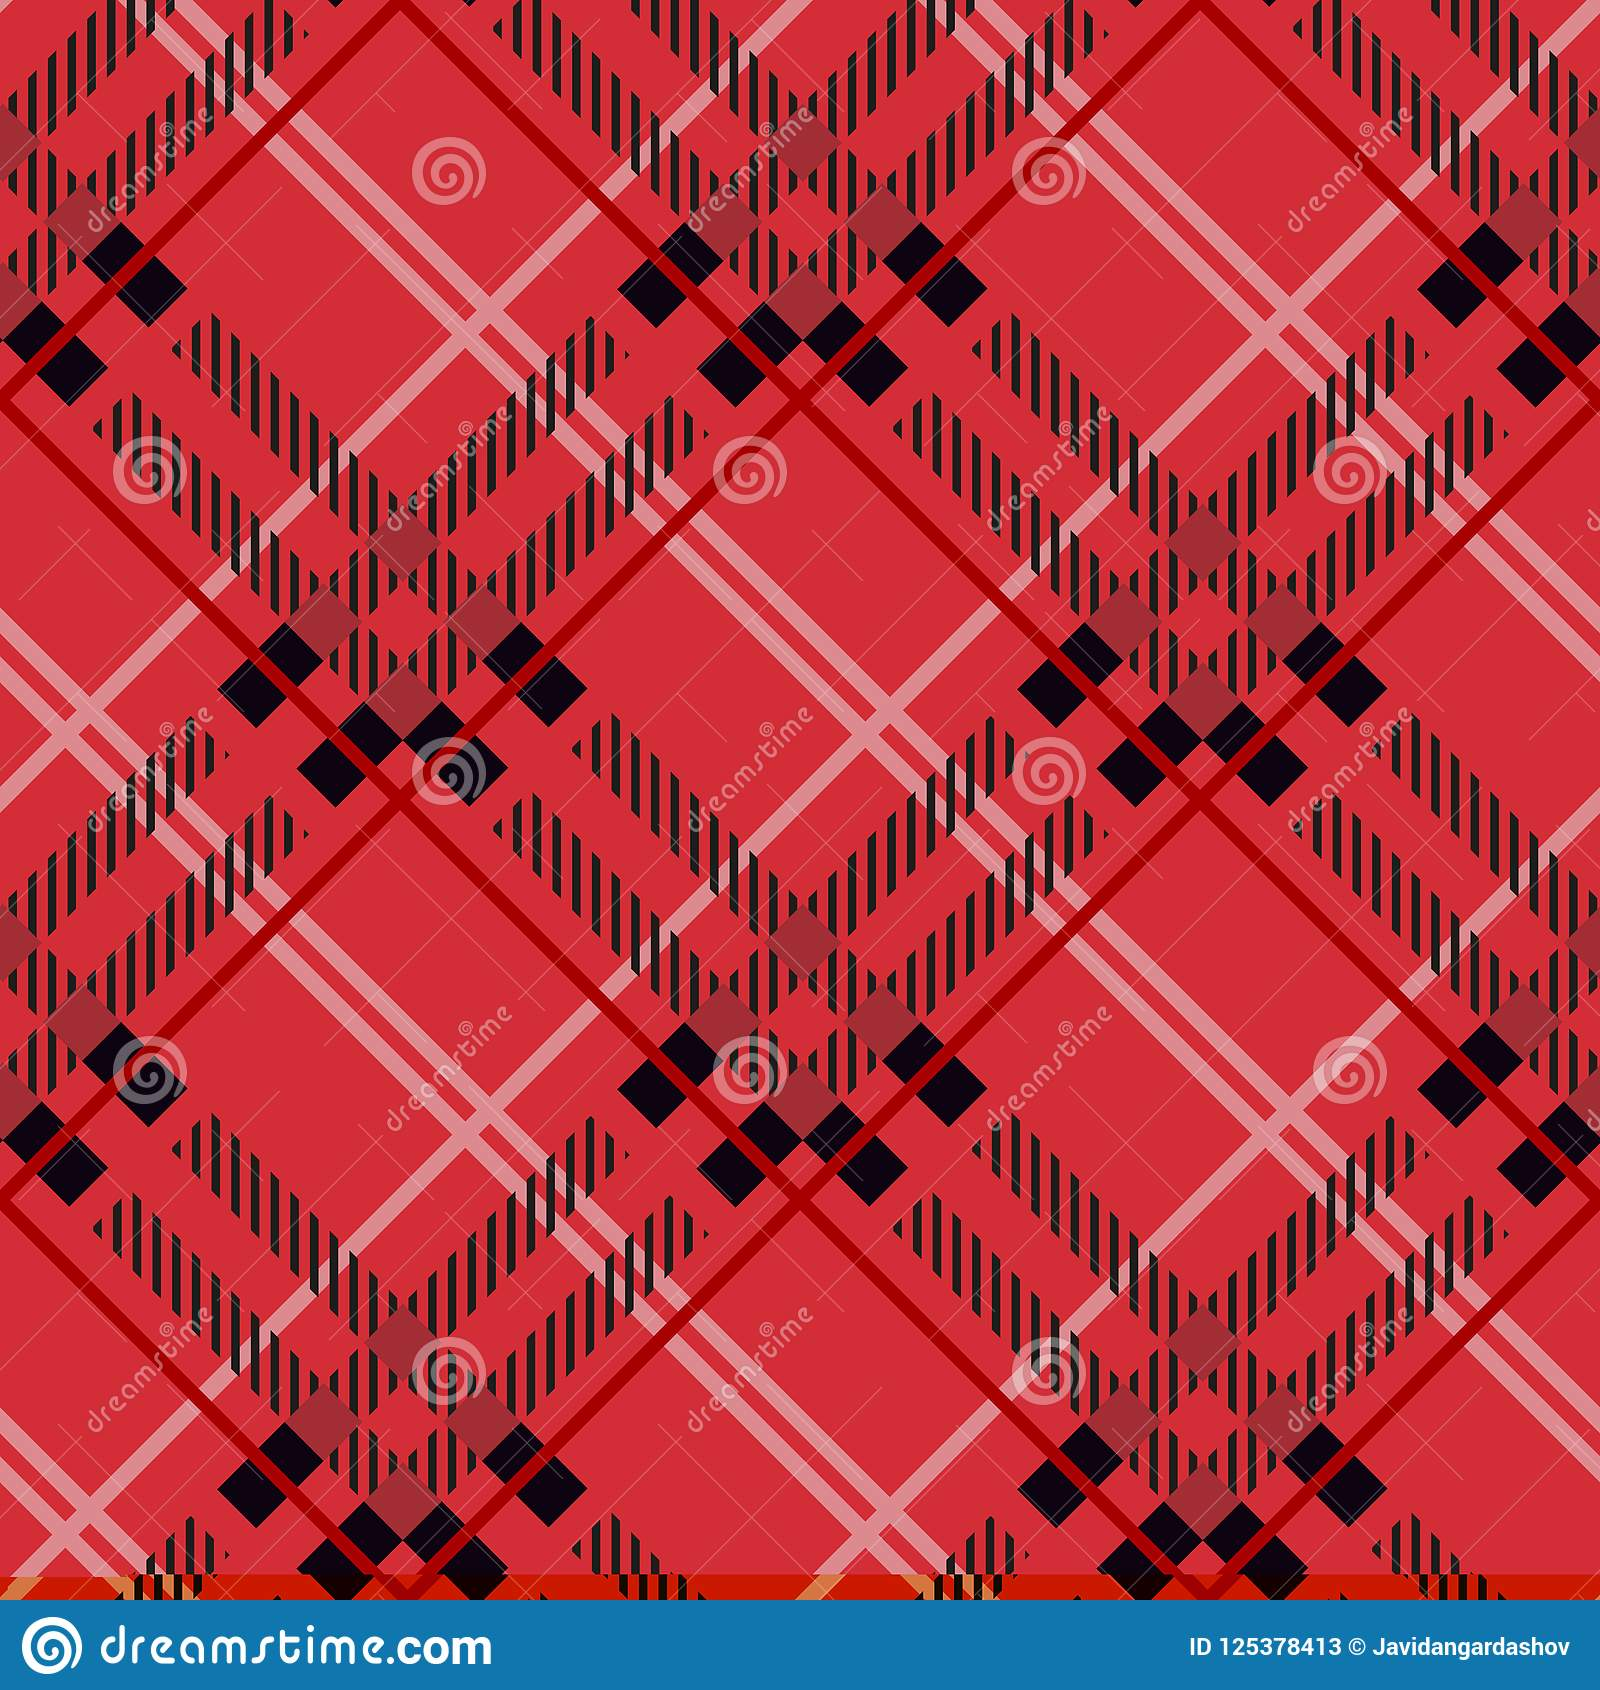 tartanplaid pattern vector backgroundtartan pattern fashion illustrationvector wallpaper christmasnew year decor traditional redblackgreen scottish